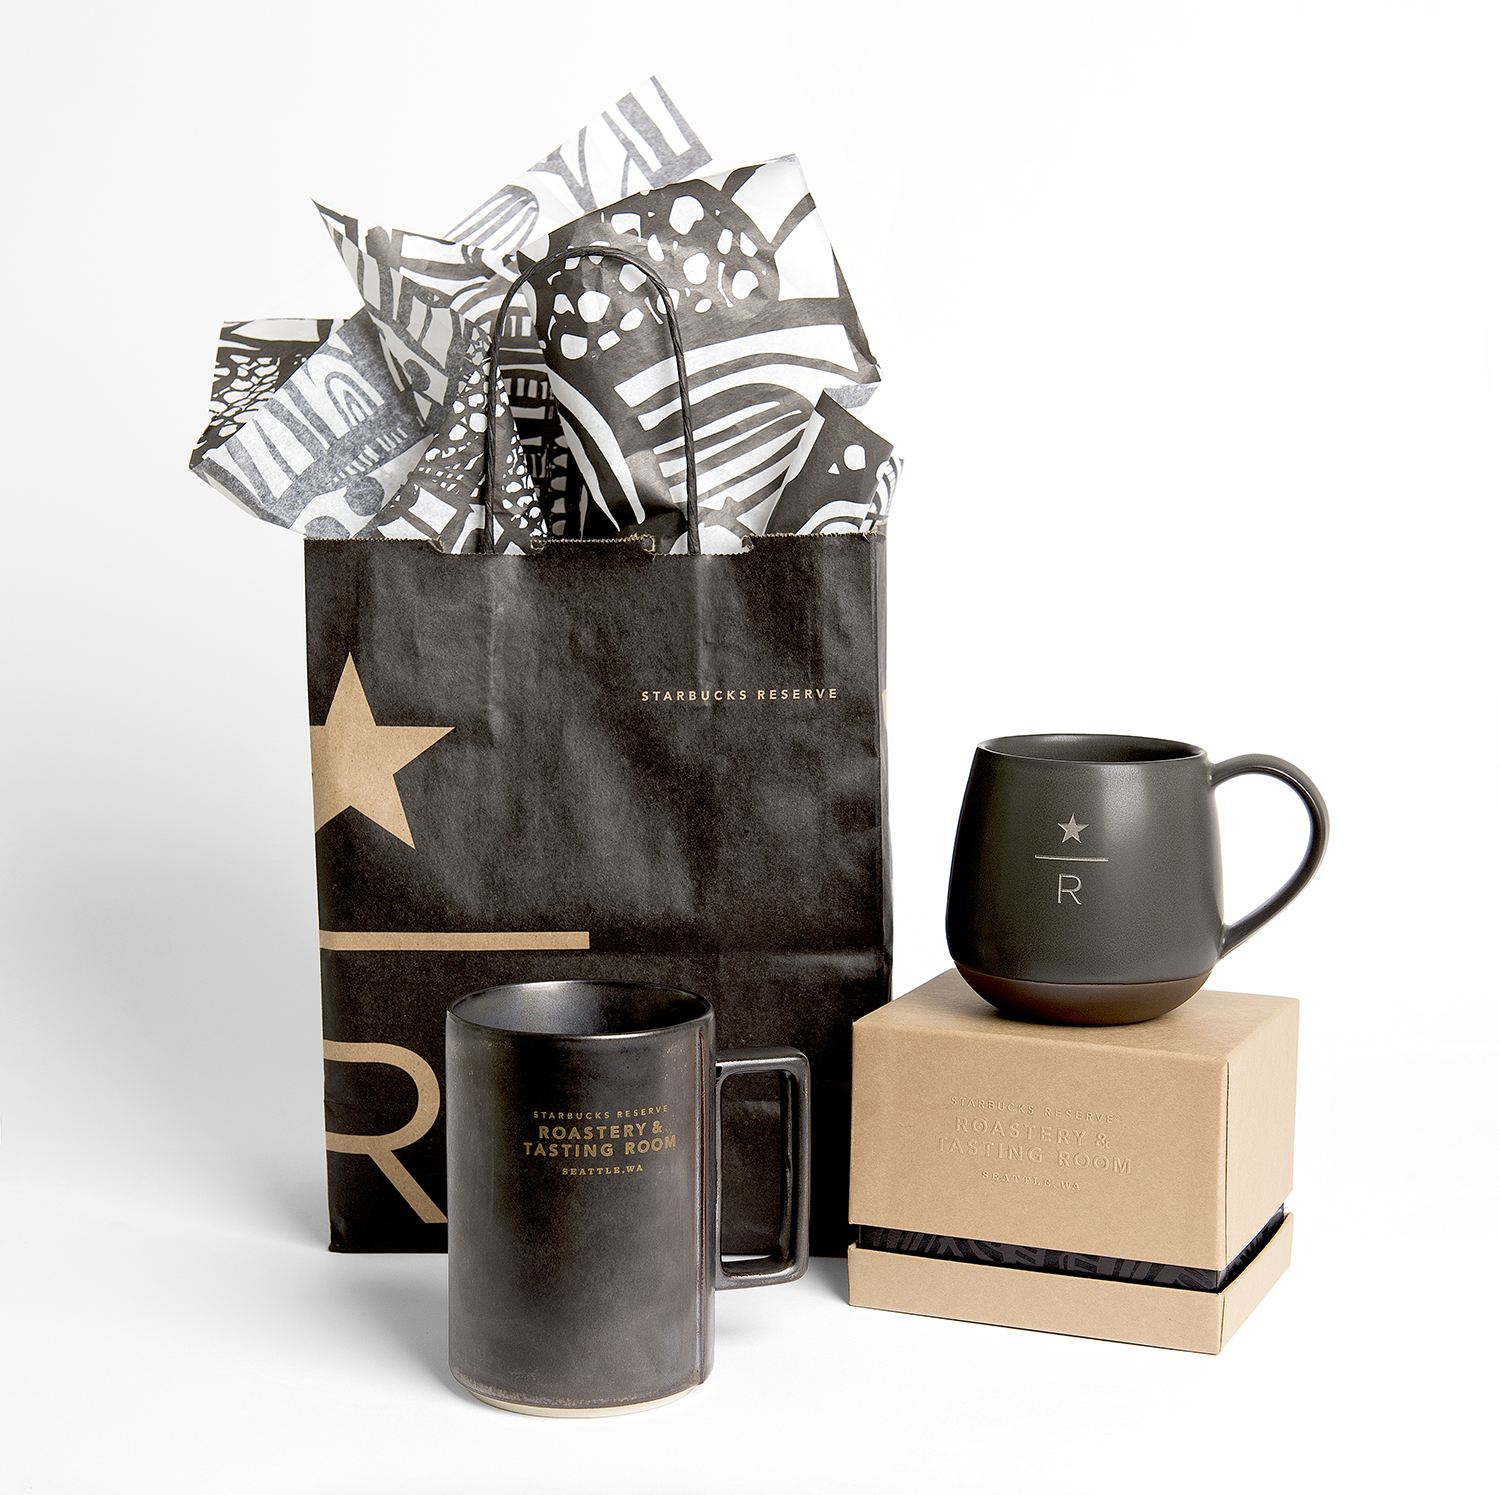 LEFT  In-store exclusive  Starbucks Reserve Roastery & Tasting Room  mug design.  RIGHT For-here-ware mug design.